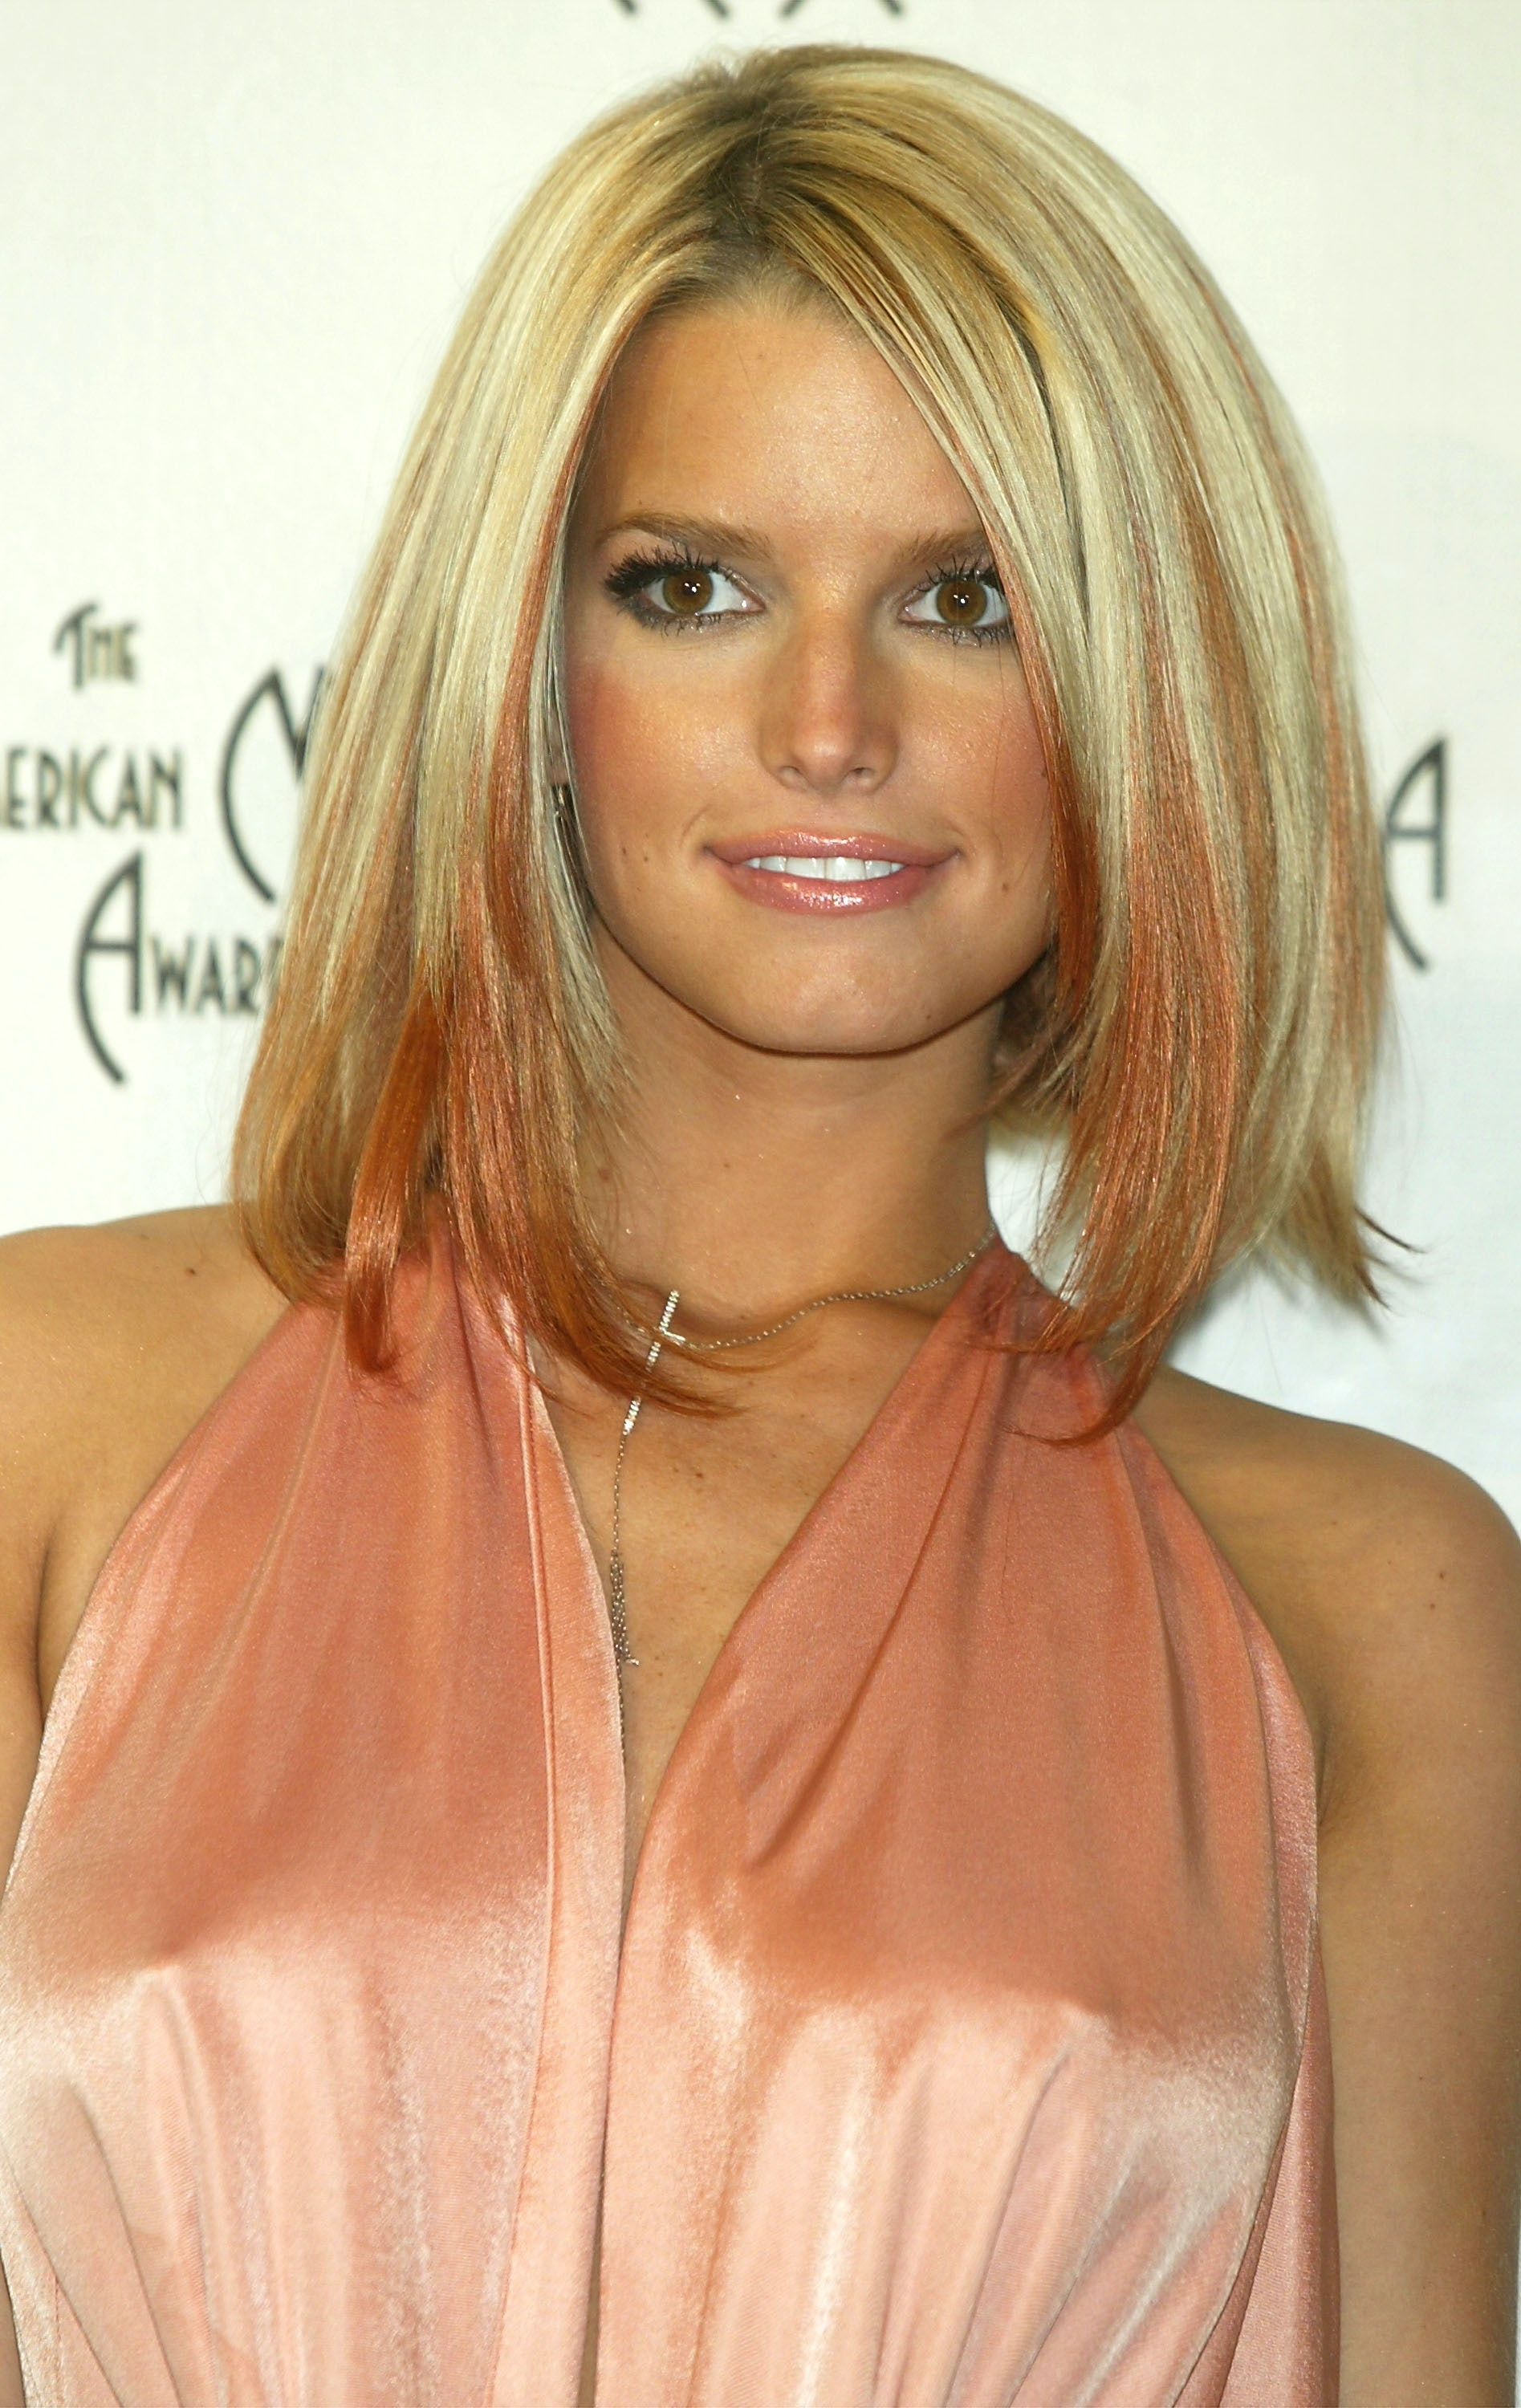 Jessica Simpson Tried A New Hairstyle This Week And The Internet Was Not Loving It photo